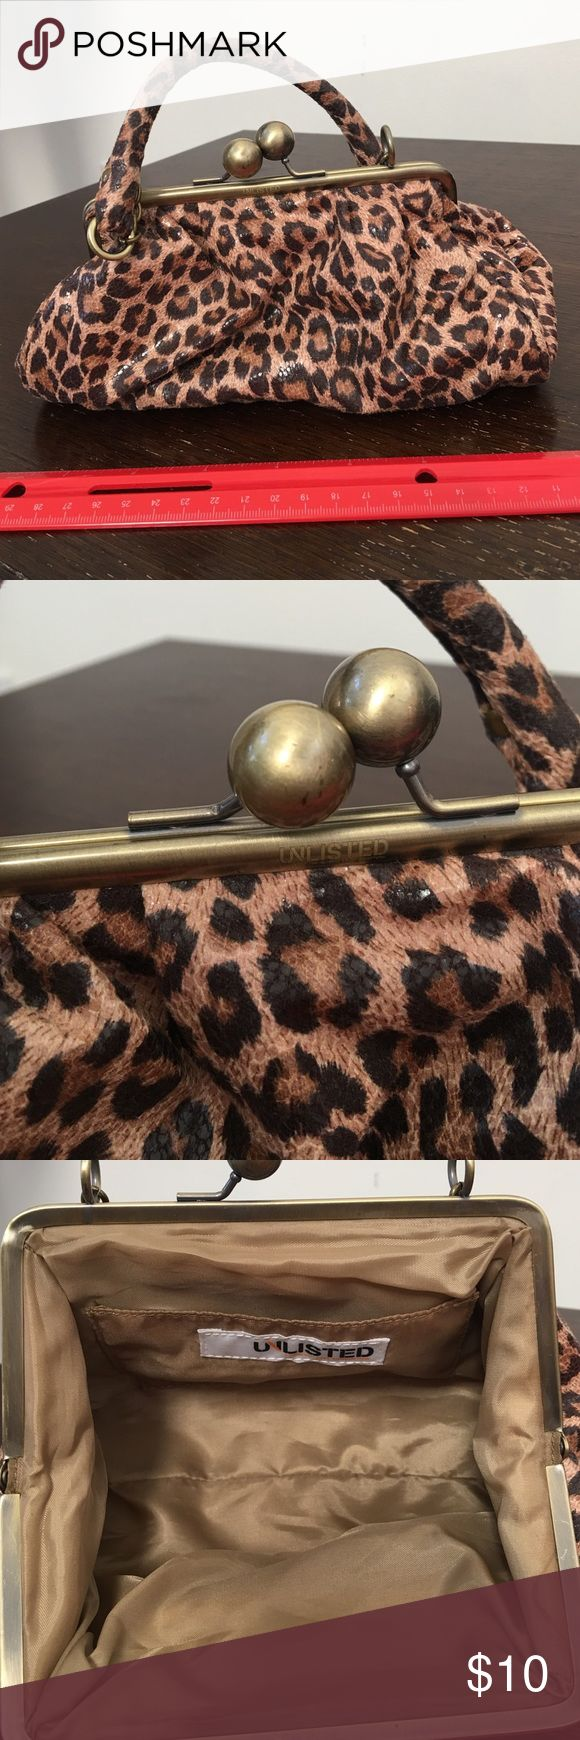 Cute Leopard Print Bag Cute Leopard Print Bag; never used Unlisted Bags Clutches & Wristlets